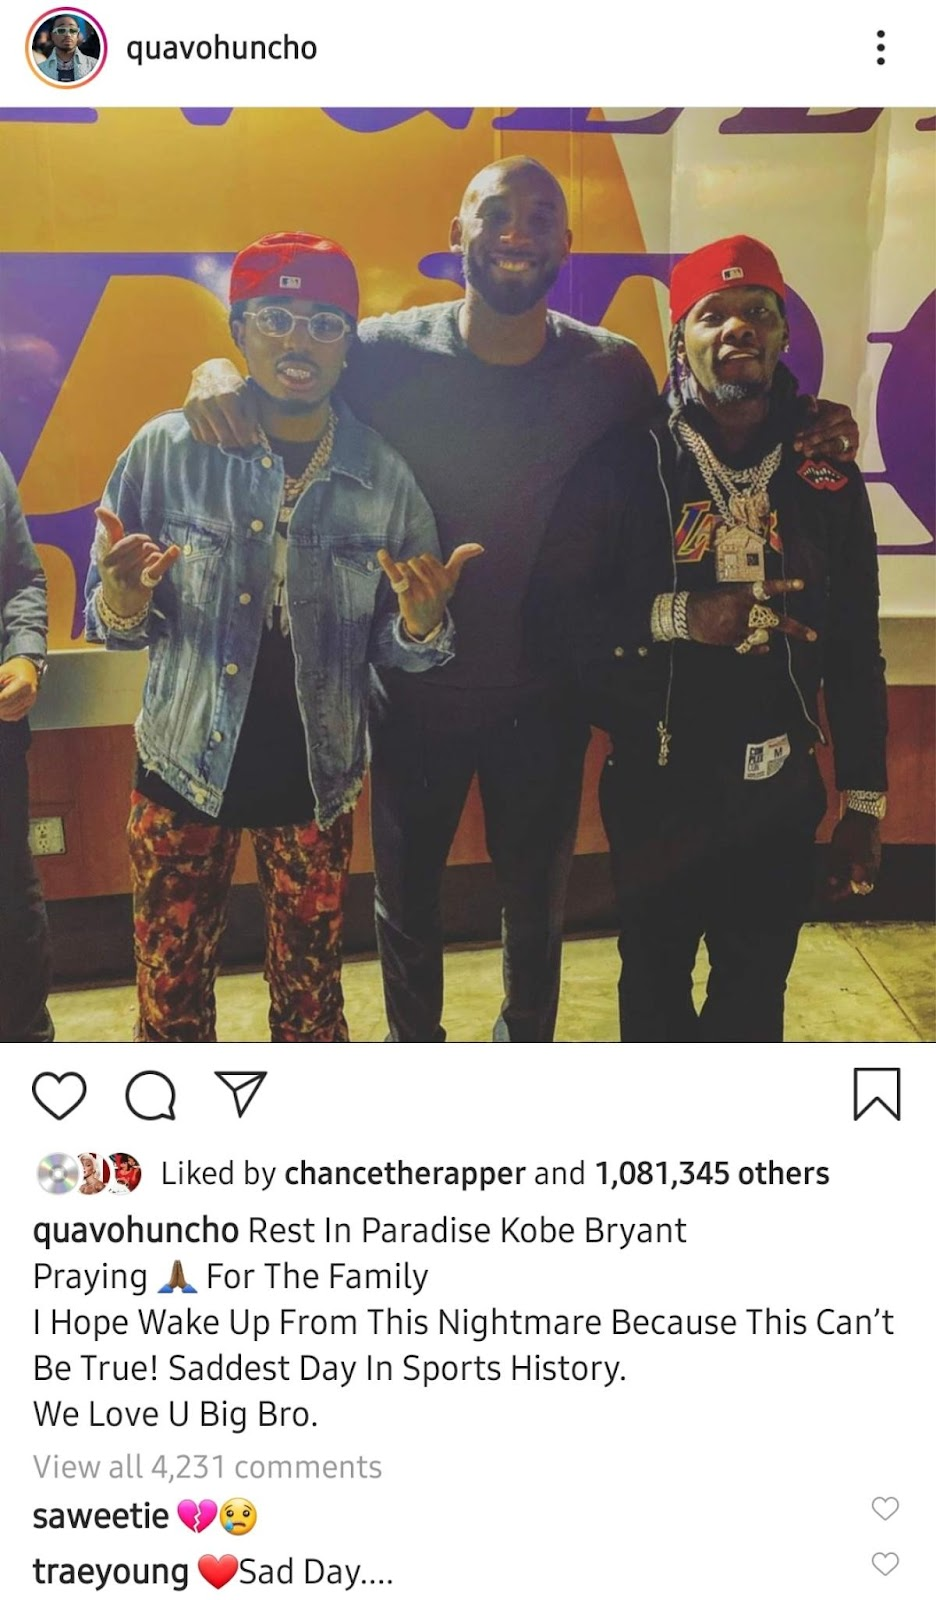 quavohuncho Liked by chancetherapper and 1,081,345 others quavohuncho Rest In Paradise Kobe Bryant Praying A For The Family I Hope Wake Up From This Nightmare Because This Can't Be True! Saddest Day In Sports History. We Love U Big Bro. View all 4,231 comments saweetie traeyoung •sad Day....